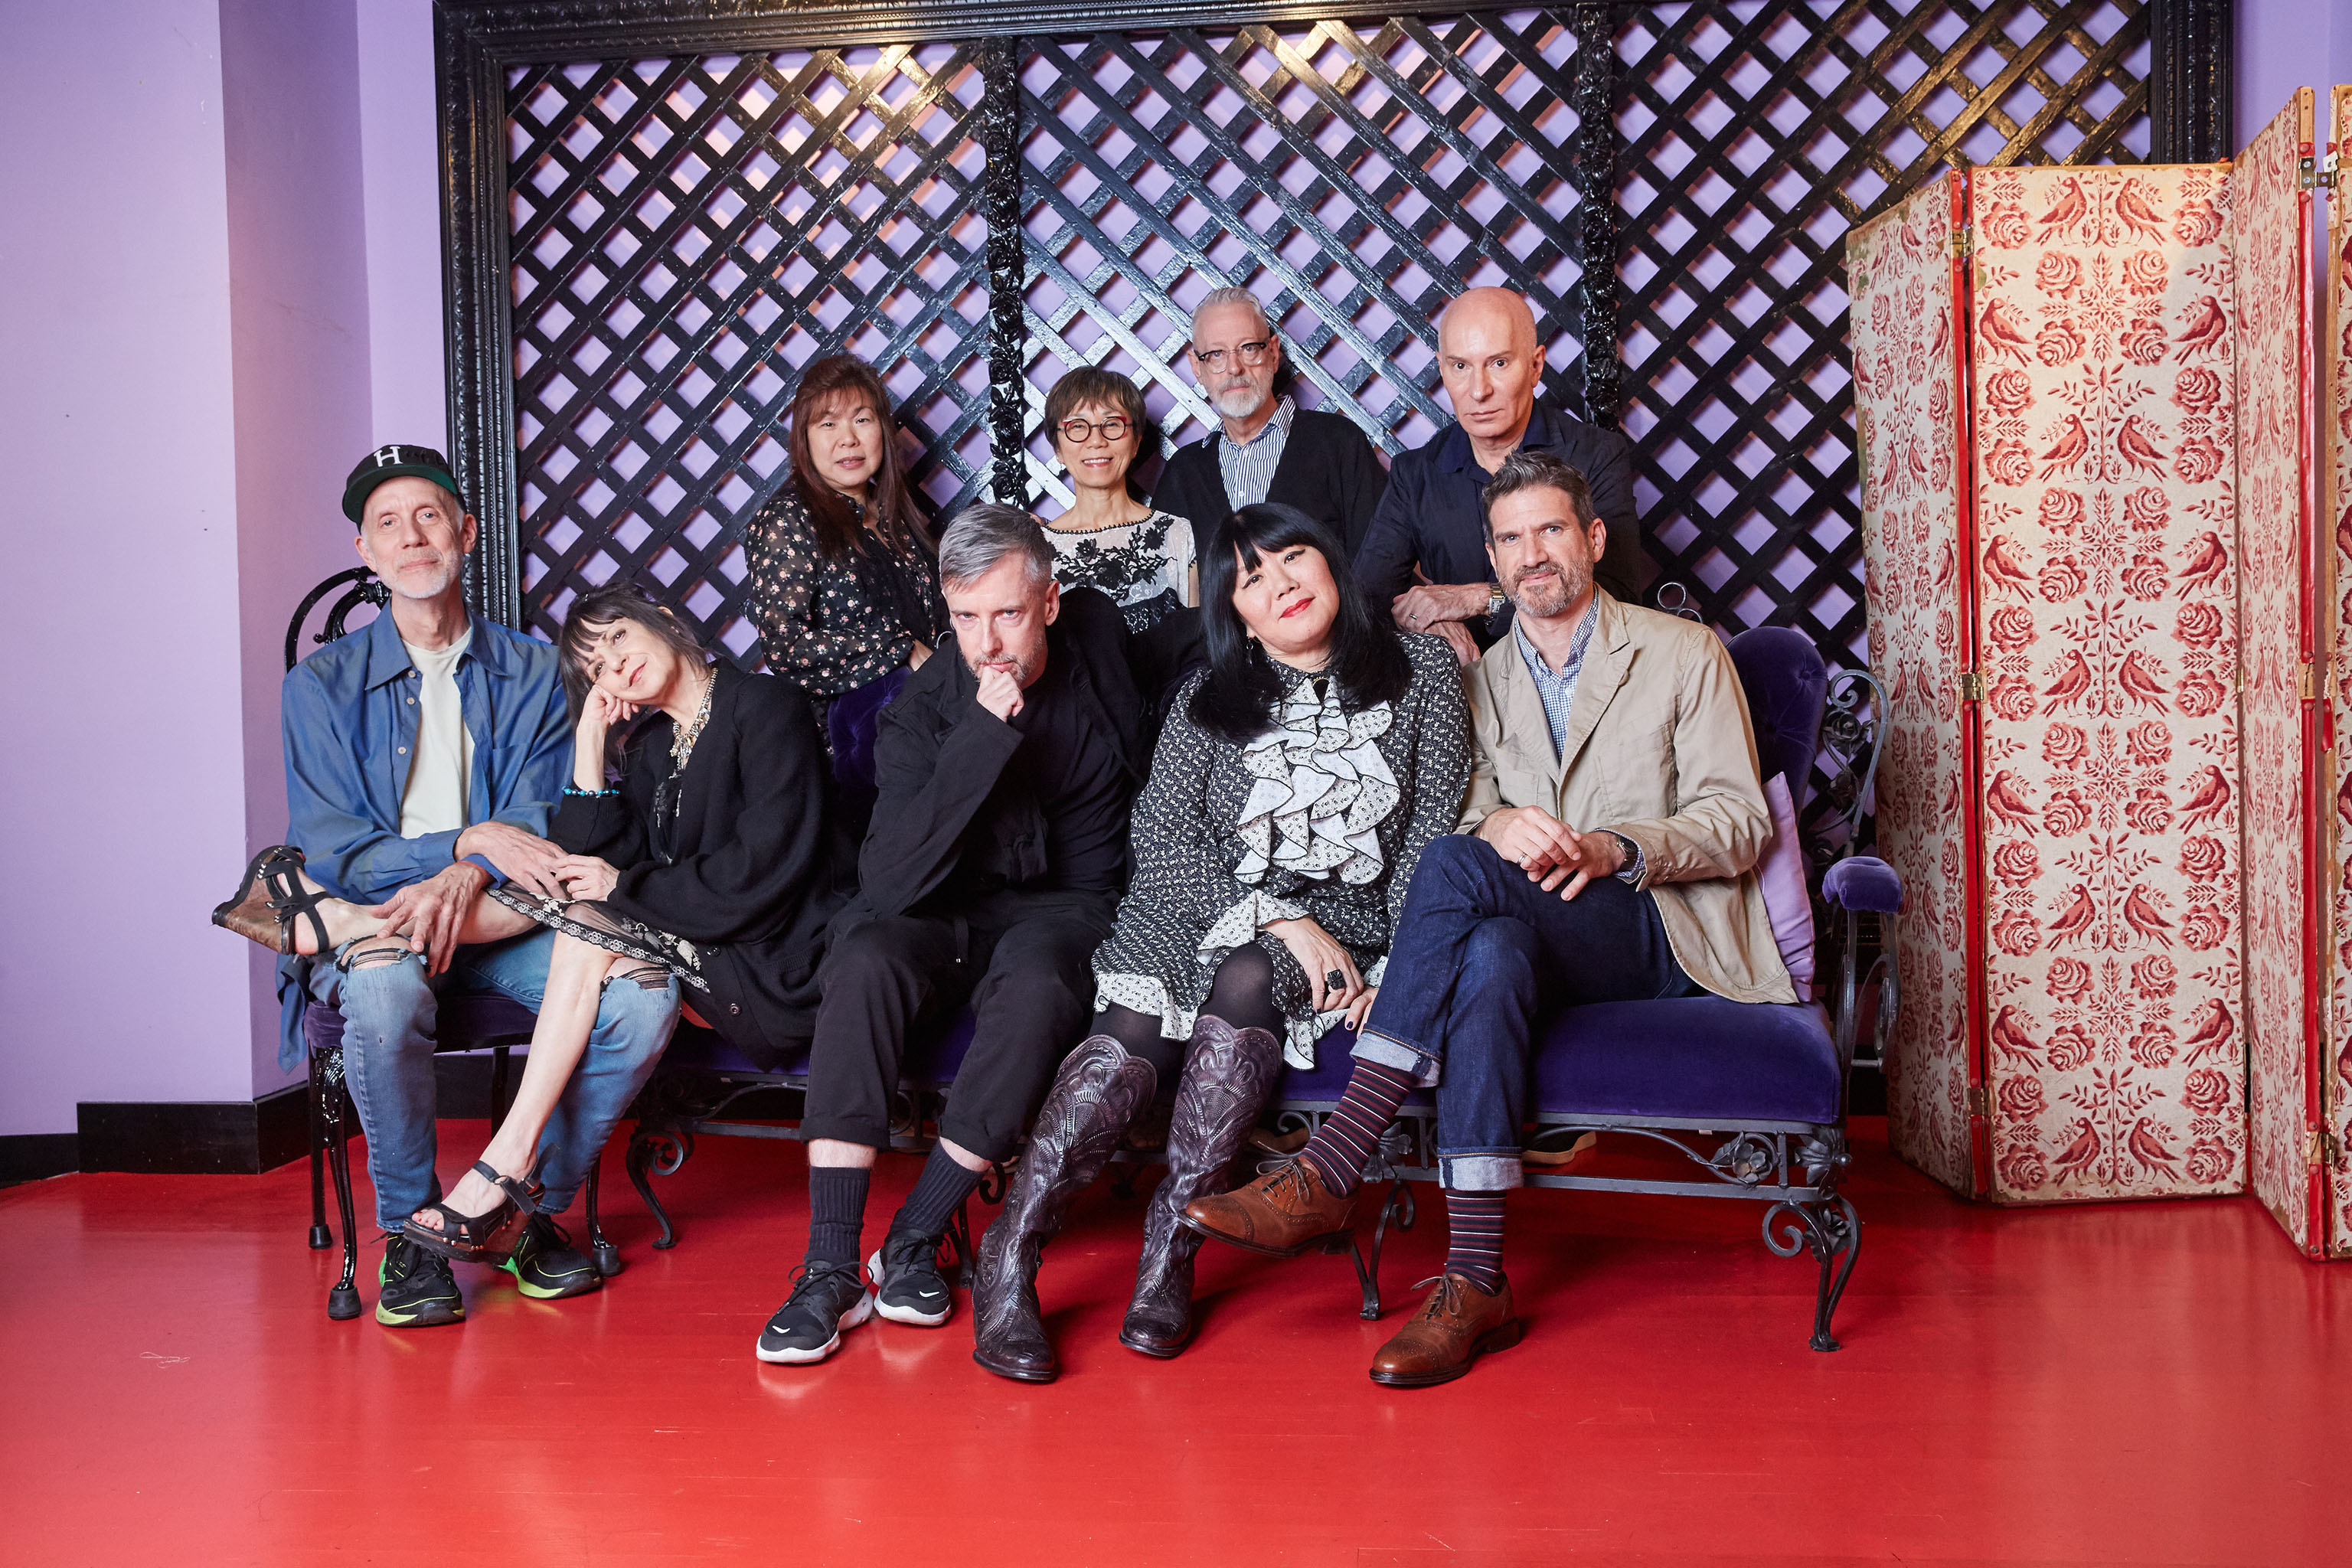 Anna Sui surrounded by members of her creative and in-house family. Clockwise from left: Eric Erickson, Karen Erickson Bill Mullen, Heidi  Foon,  Akiko Mamitsuka, Garren, James coviello and Thomas Miller.